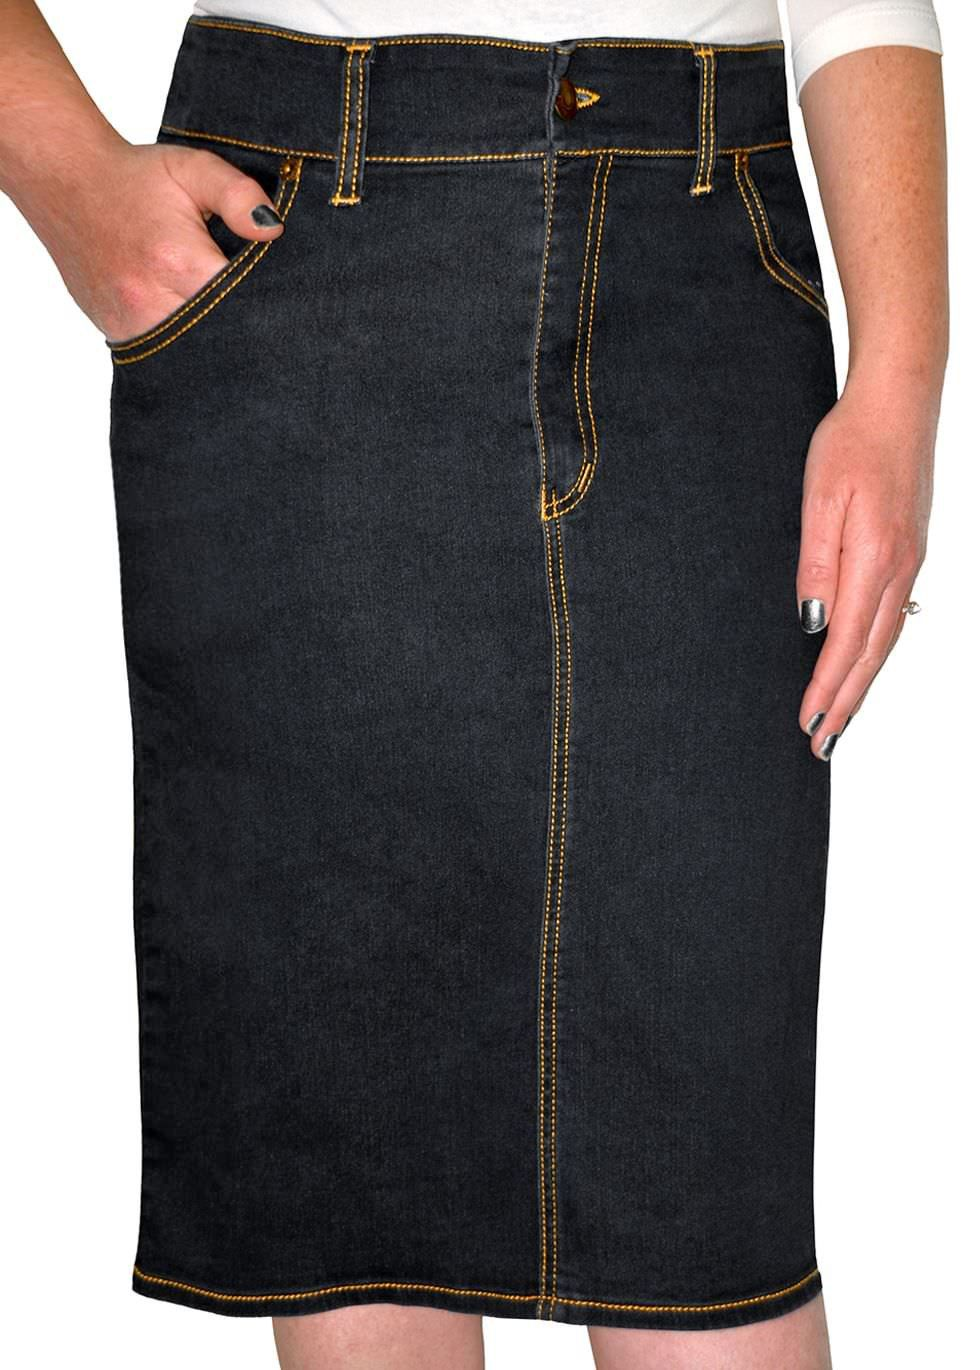 2d16268d5 Your favourite denim skirt just got better! Two front and two back pockets  with no